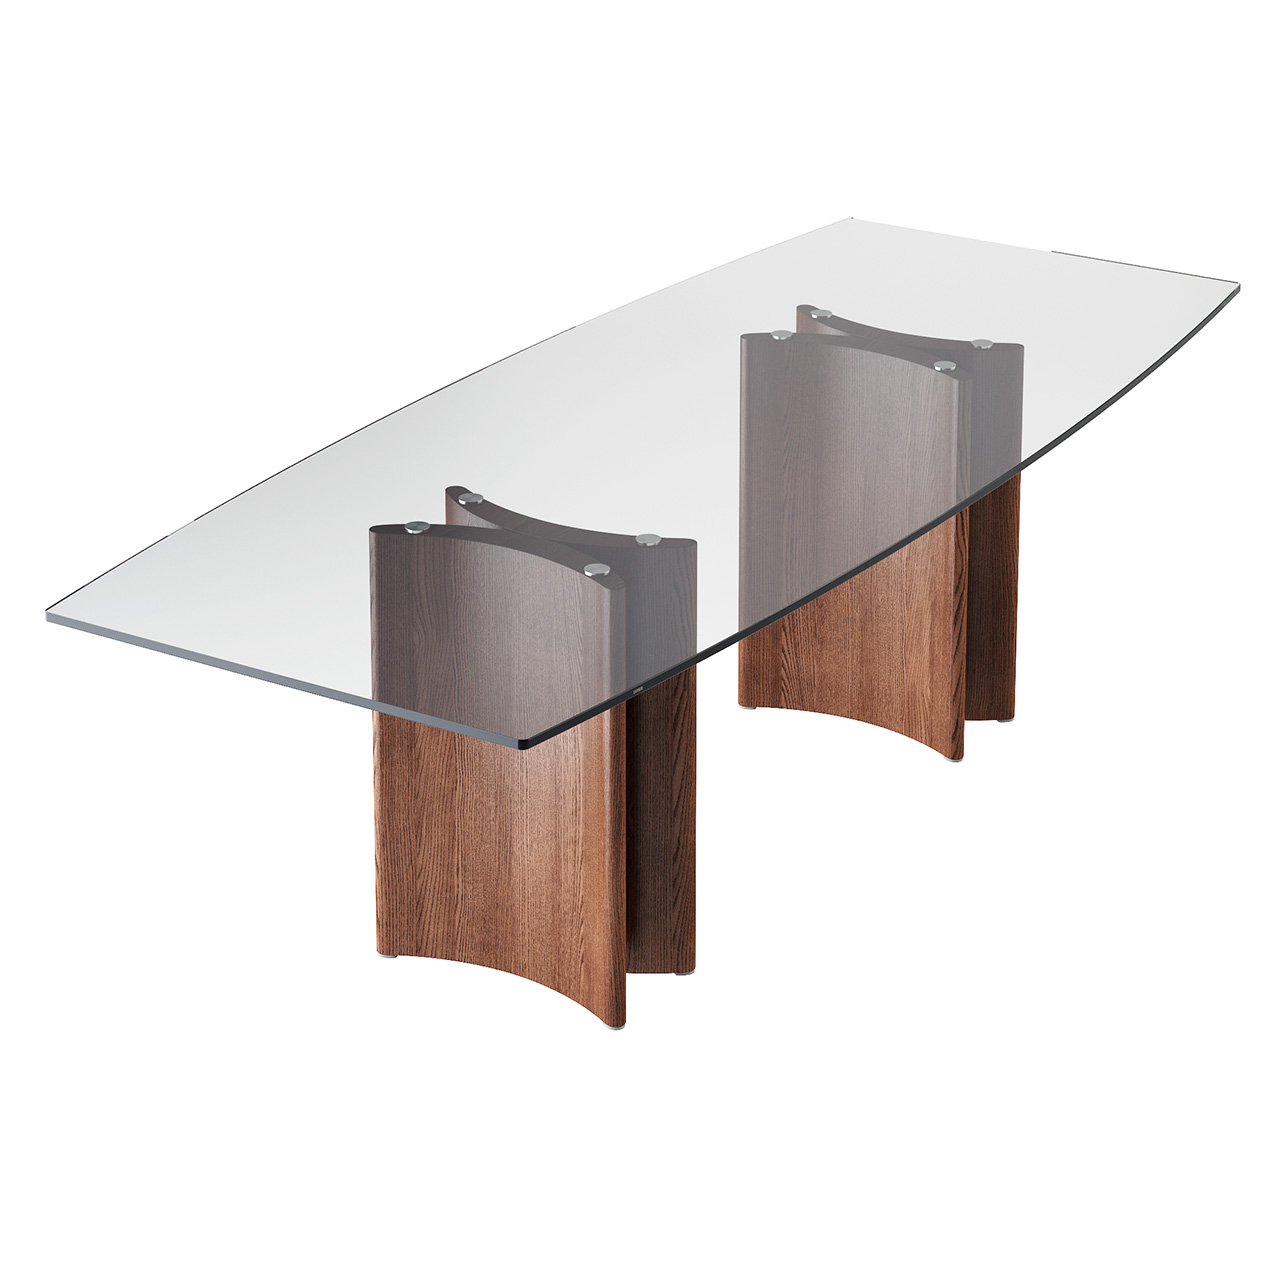 Alan Botte Cristallo Table by Porada